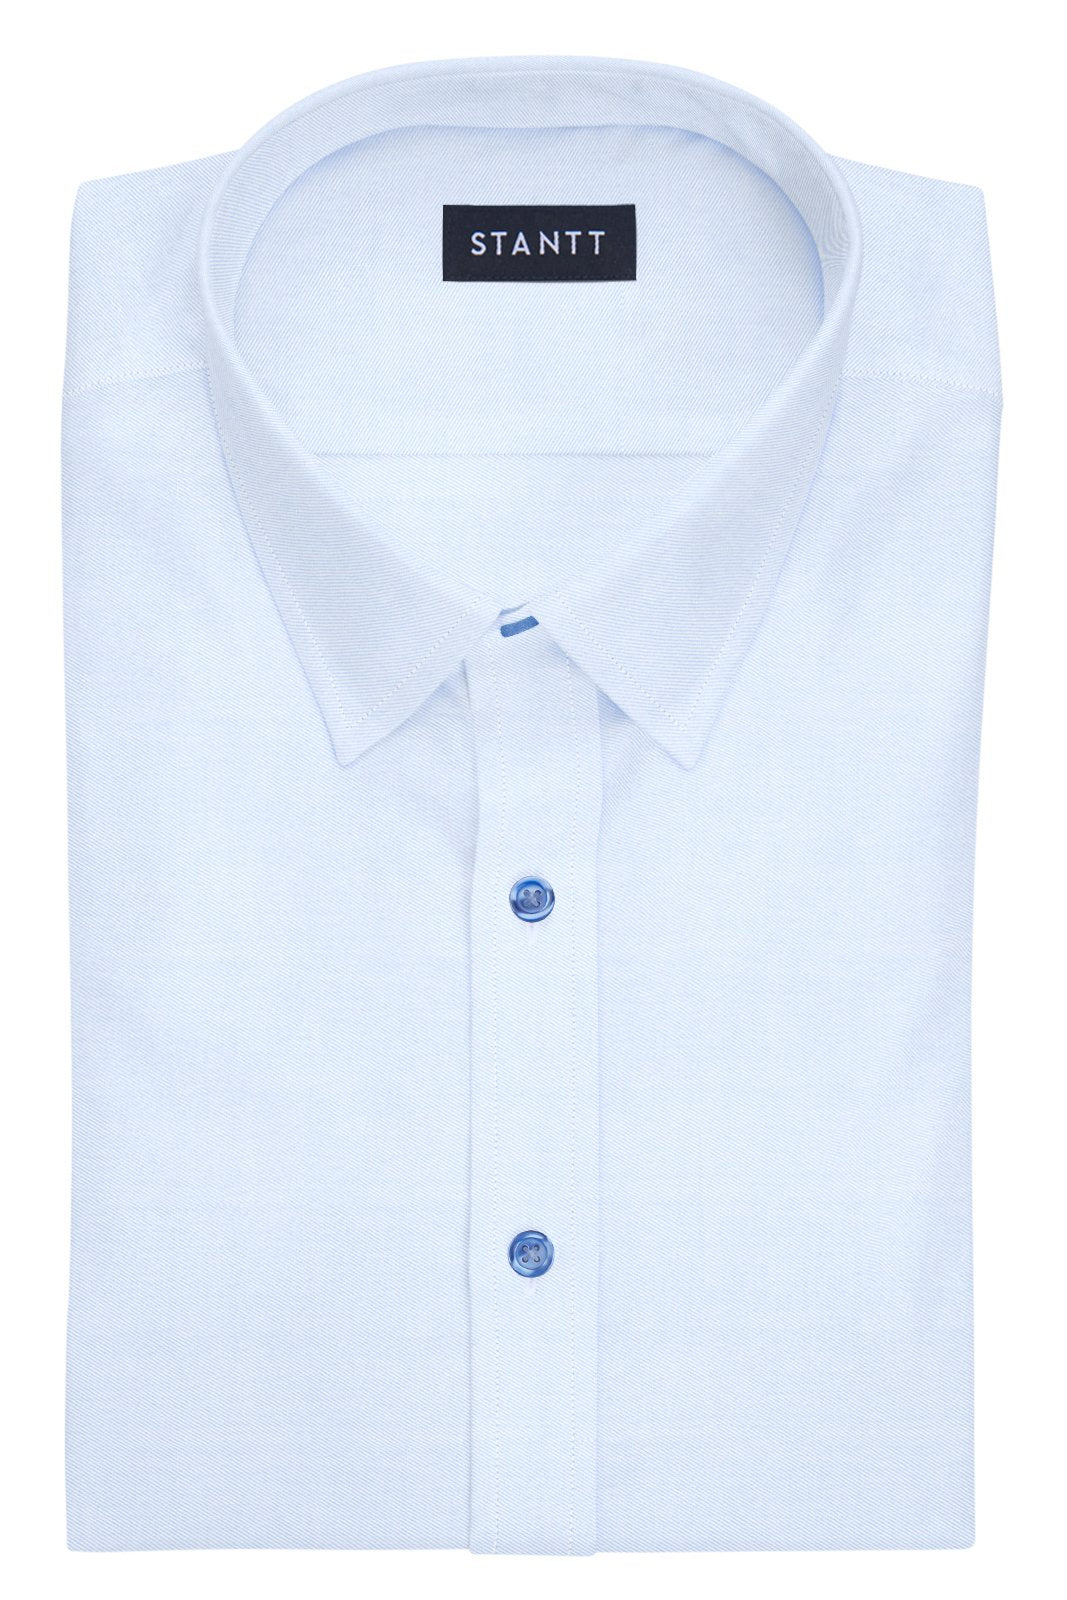 Navy Button on Wrinkle-Resistant Light Blue Twill: Semi-Spread Collar, Barrel Cuff